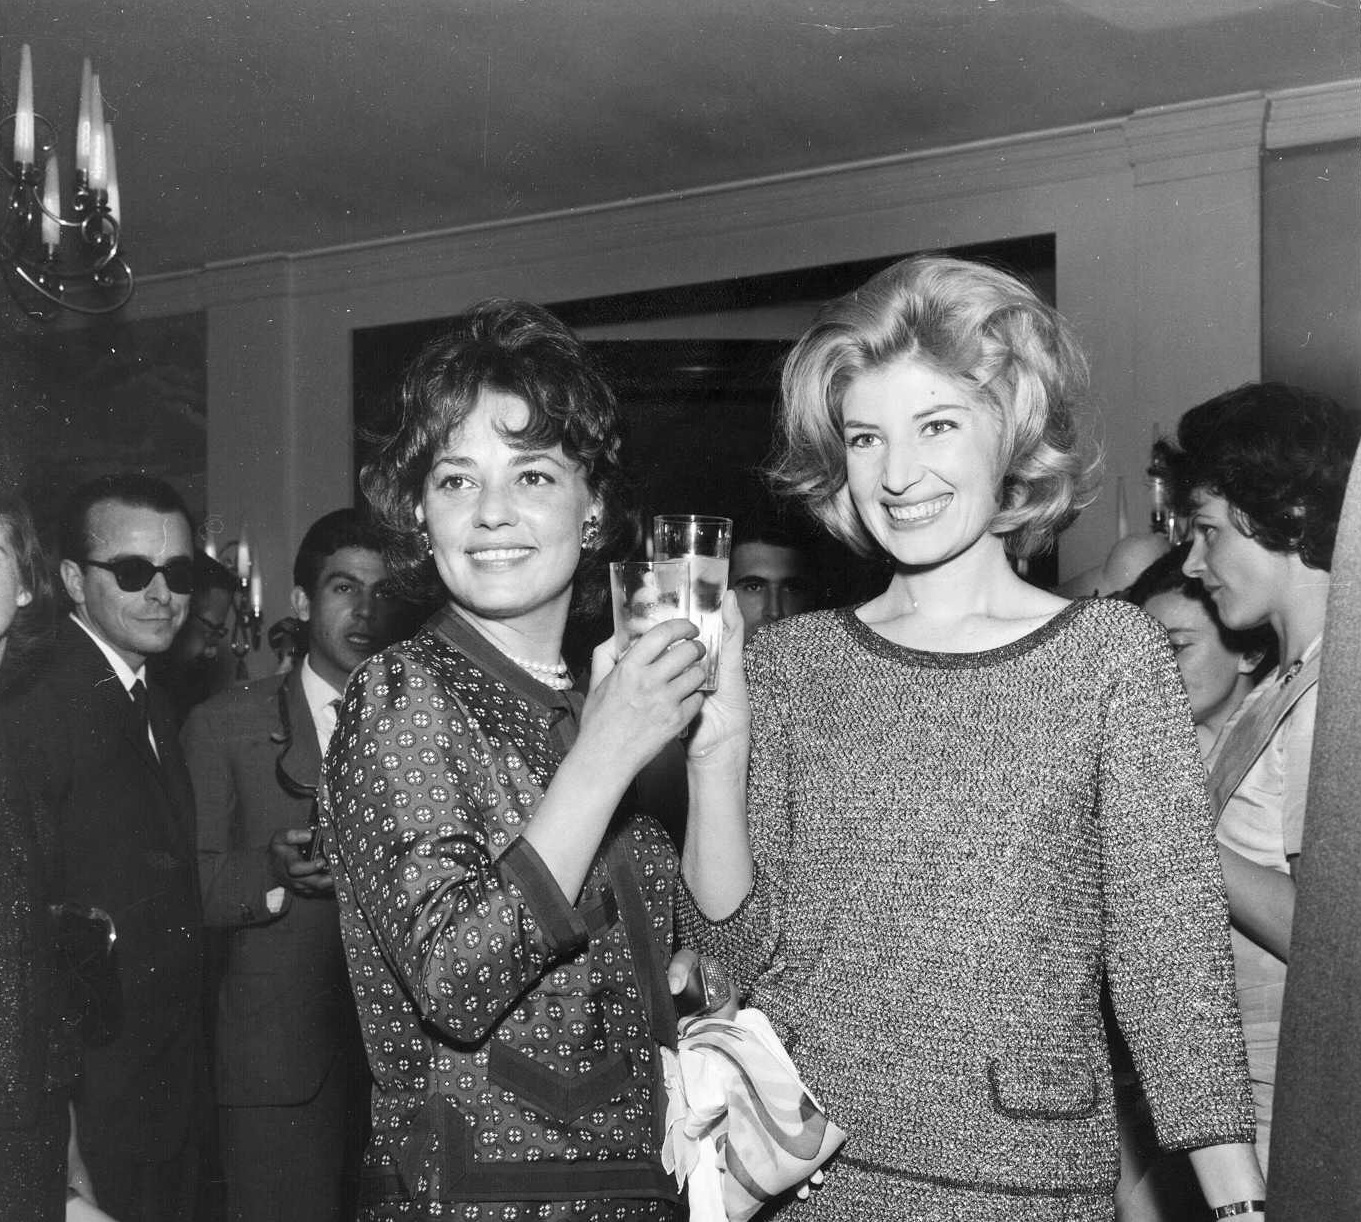 Jeanne Moreau and Monica Vitti